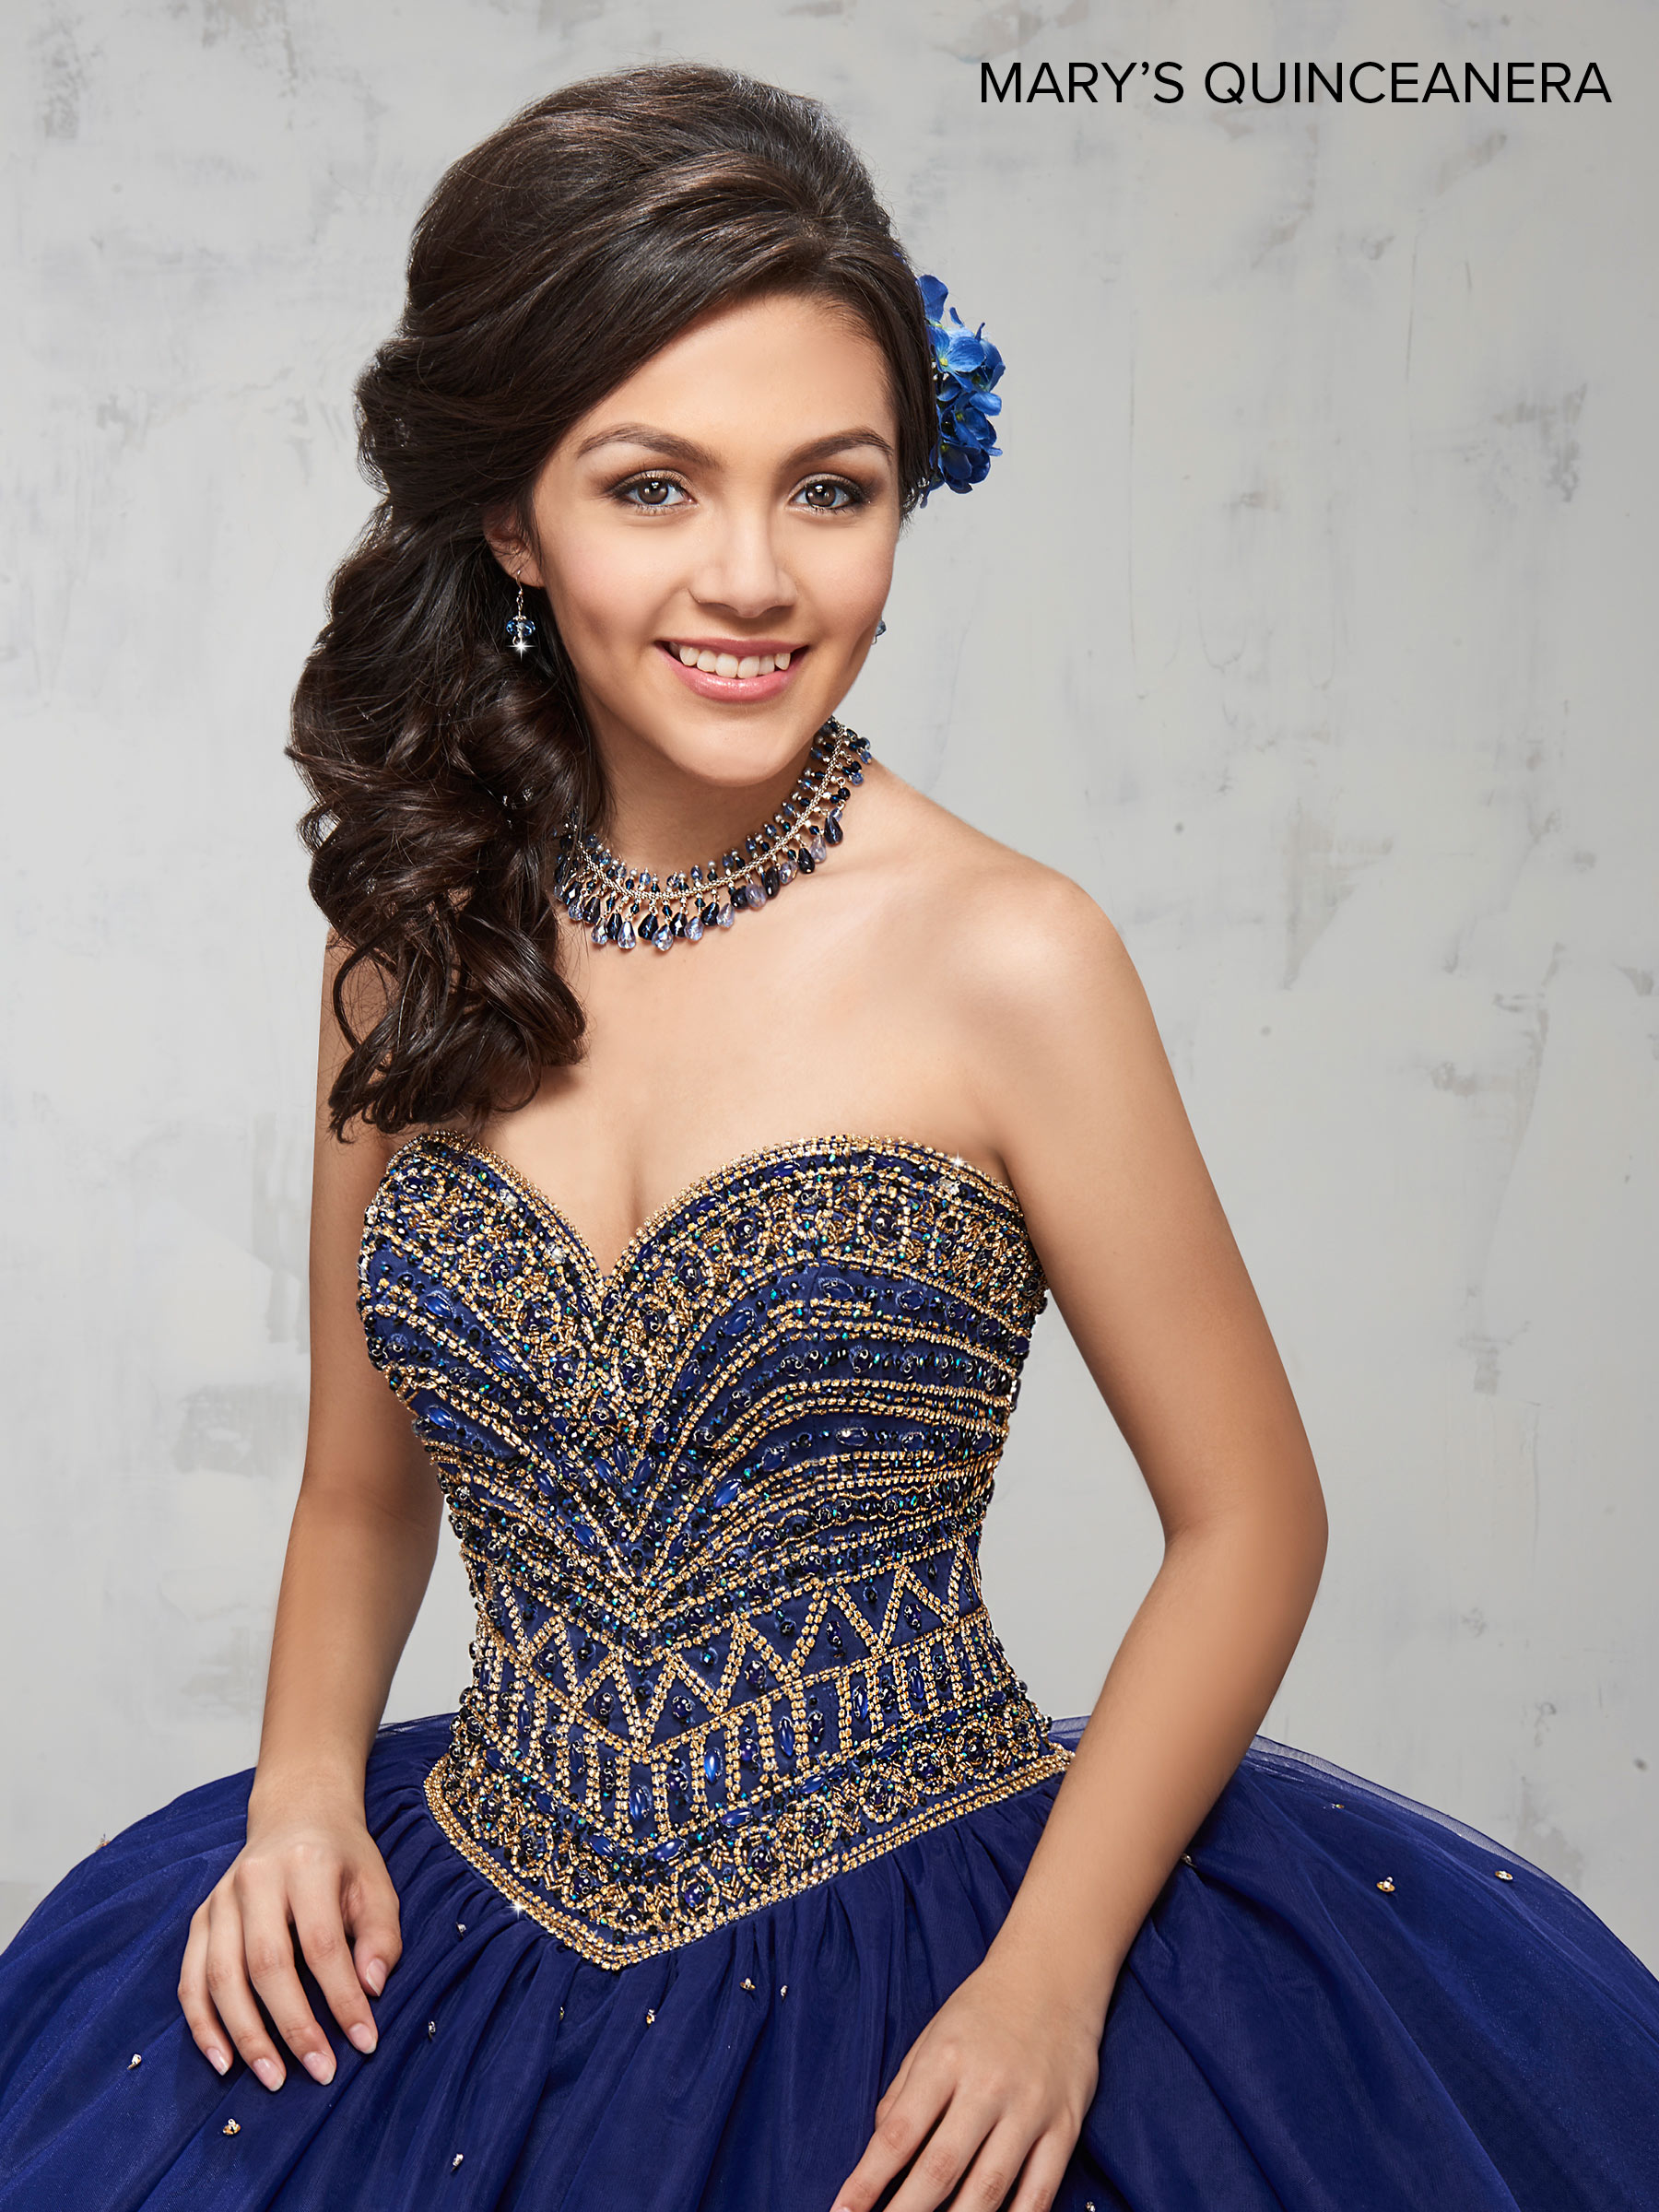 Marys Quinceanera Dresses | Mary's Quinceanera | Style - MQ1006